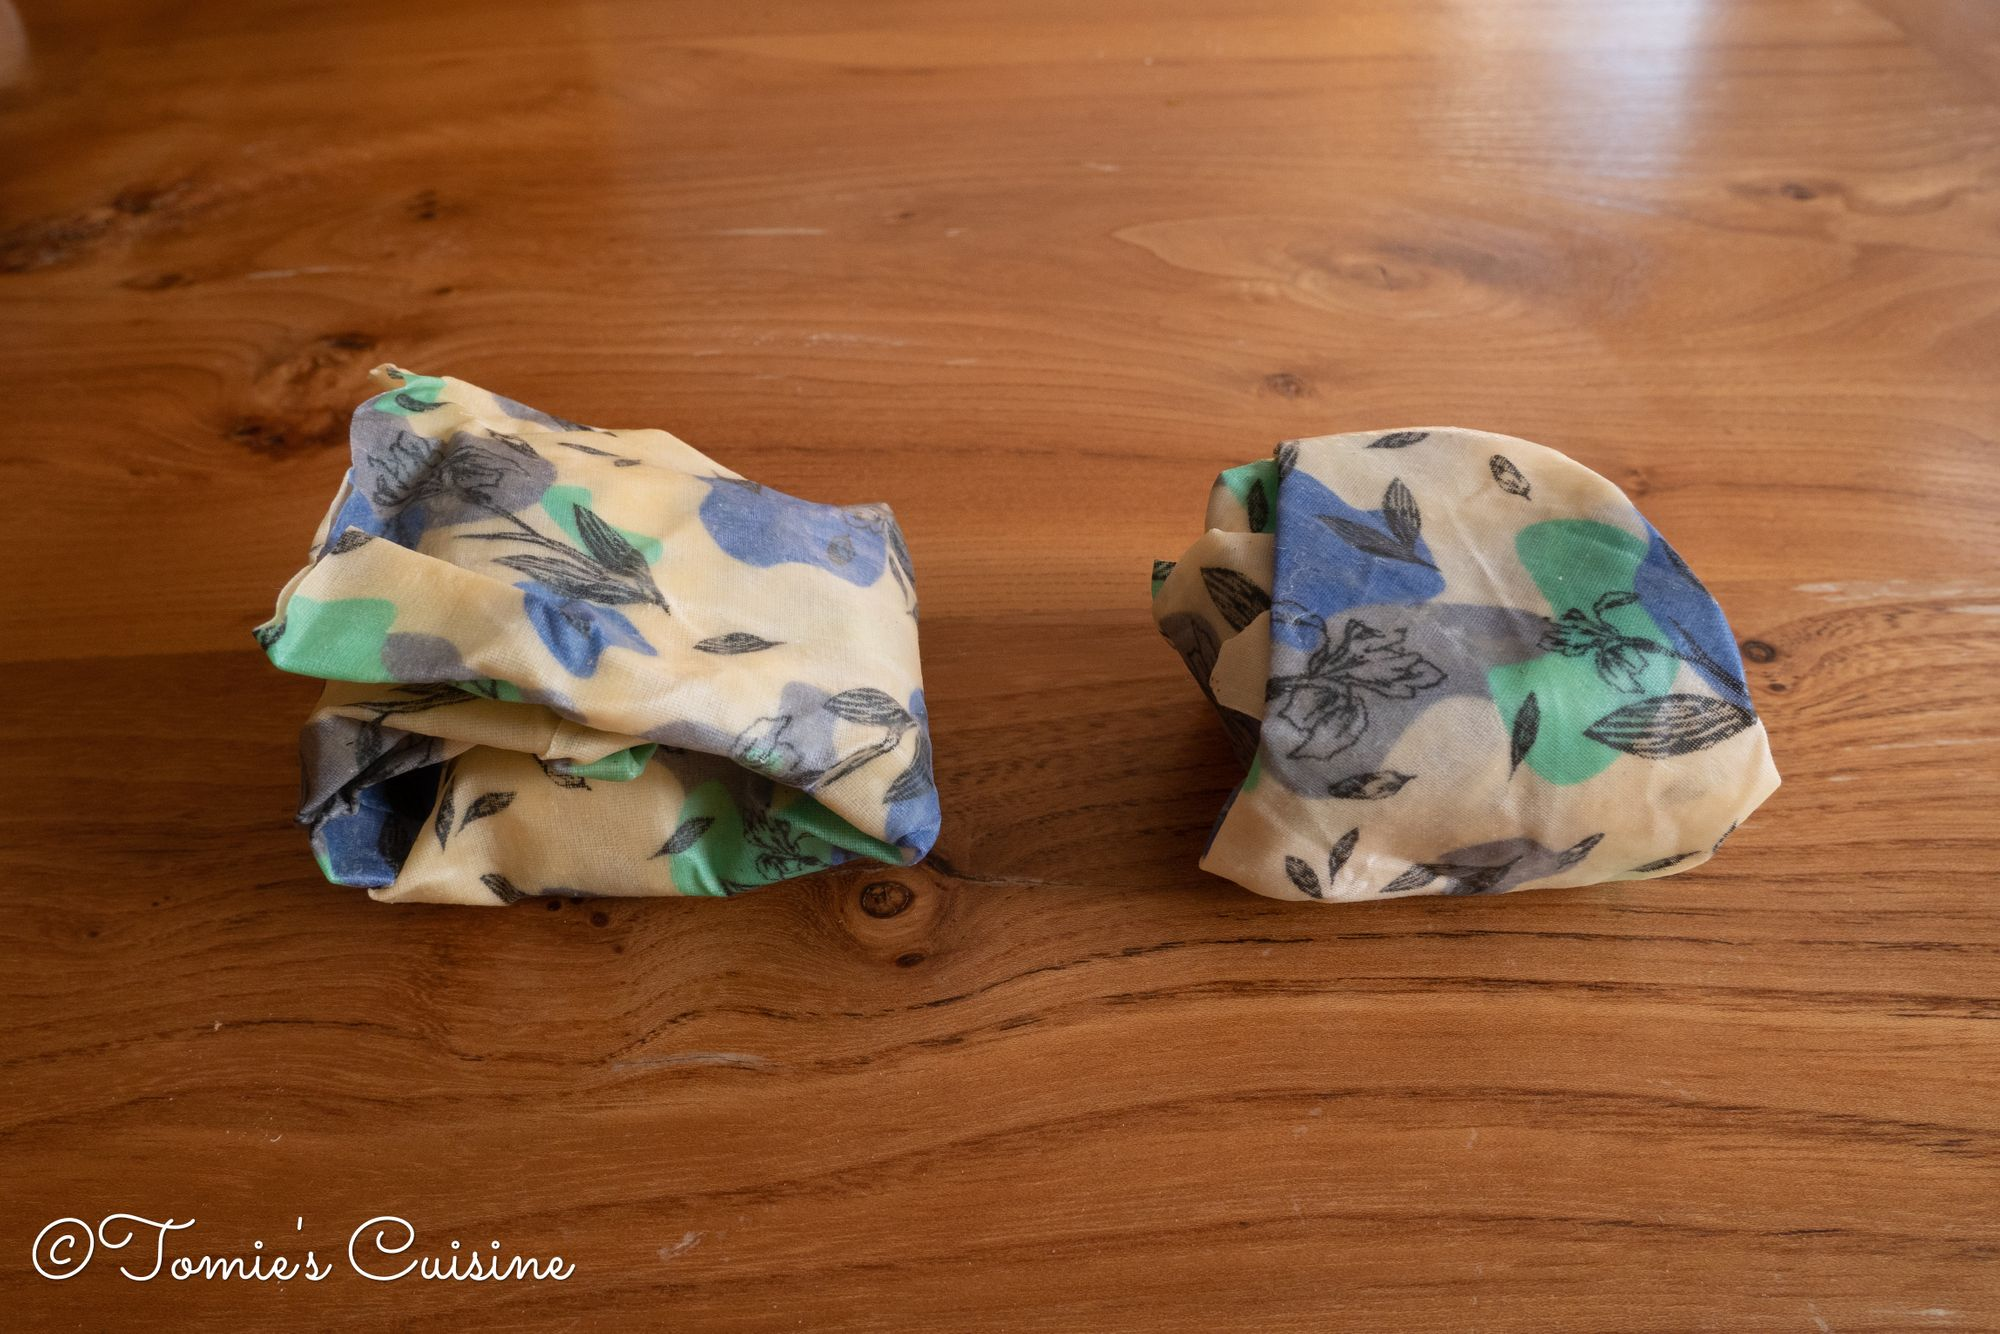 Two different cheese wrapped in beeswax wrap